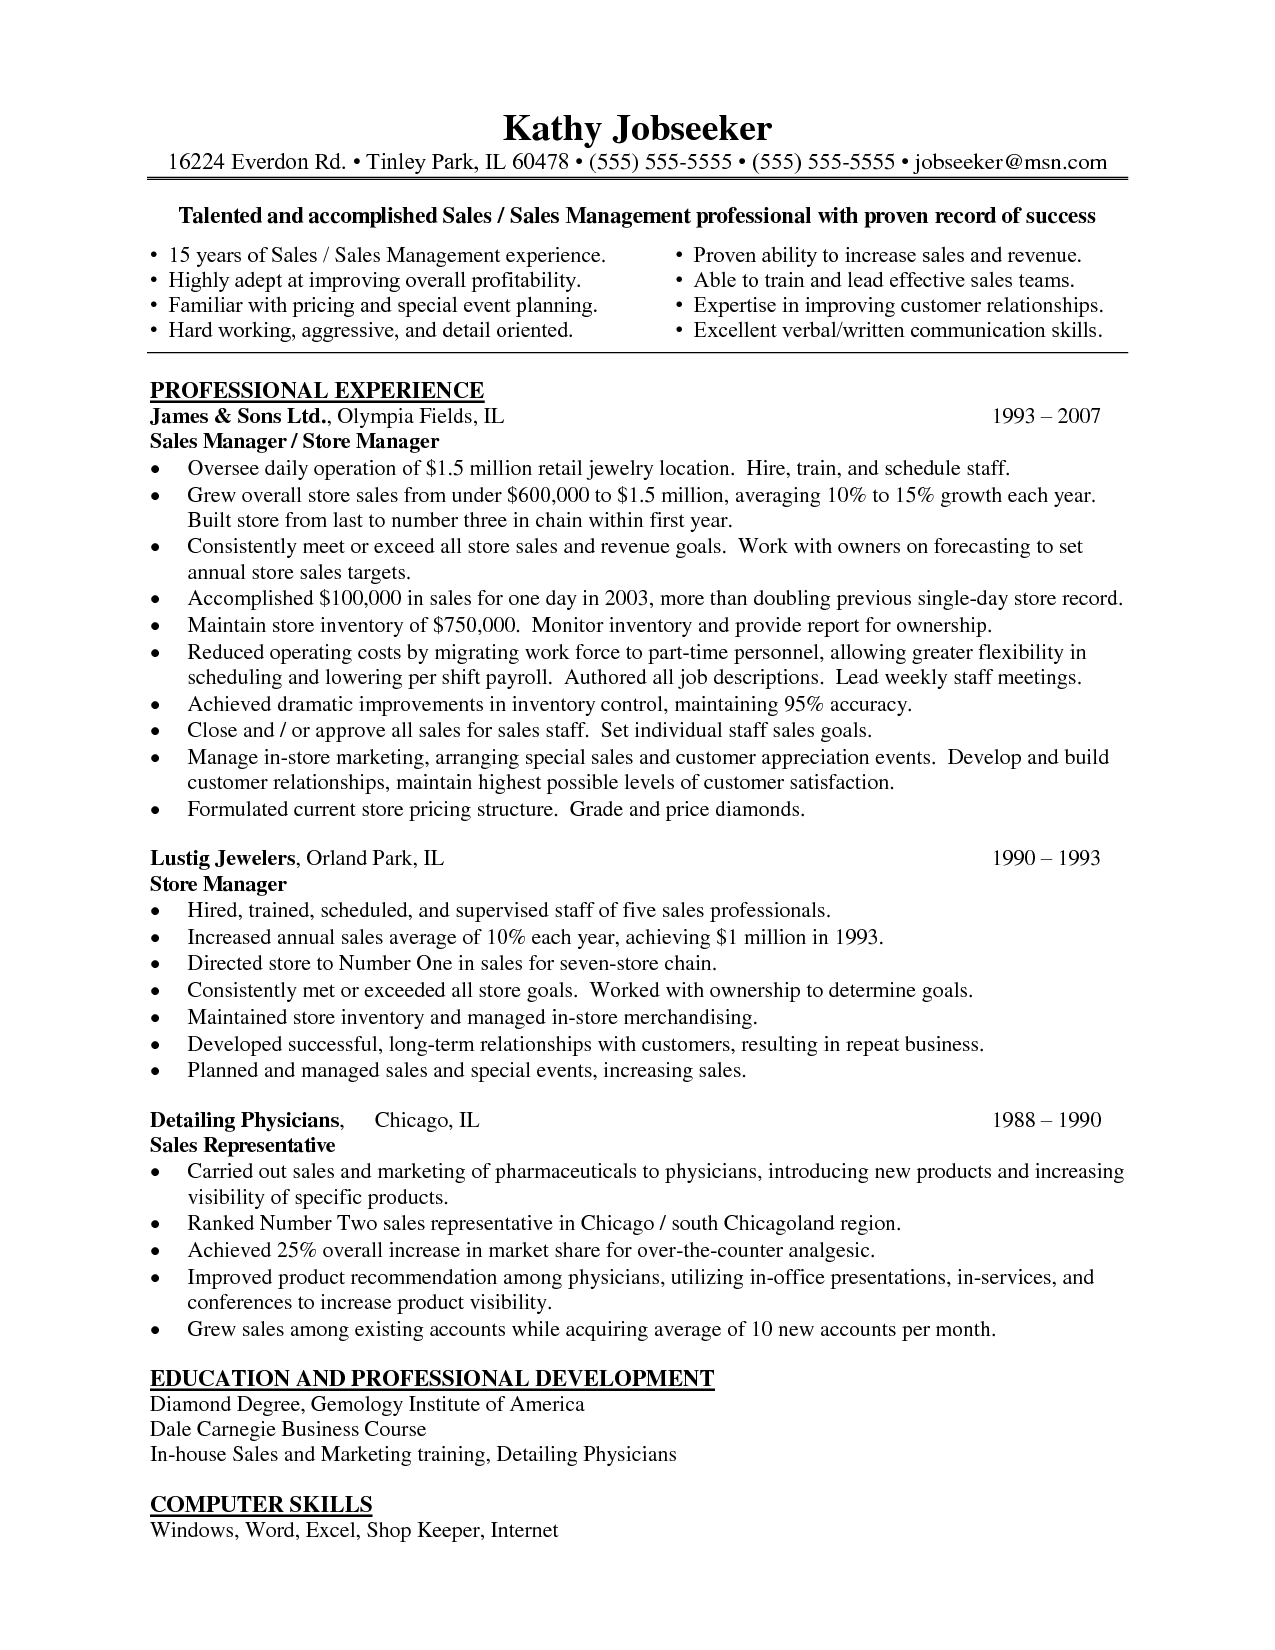 Resume Examples For Retail Store Manager | Sample Cover Letter For Retail  Management Job 4  Resume Example Retail